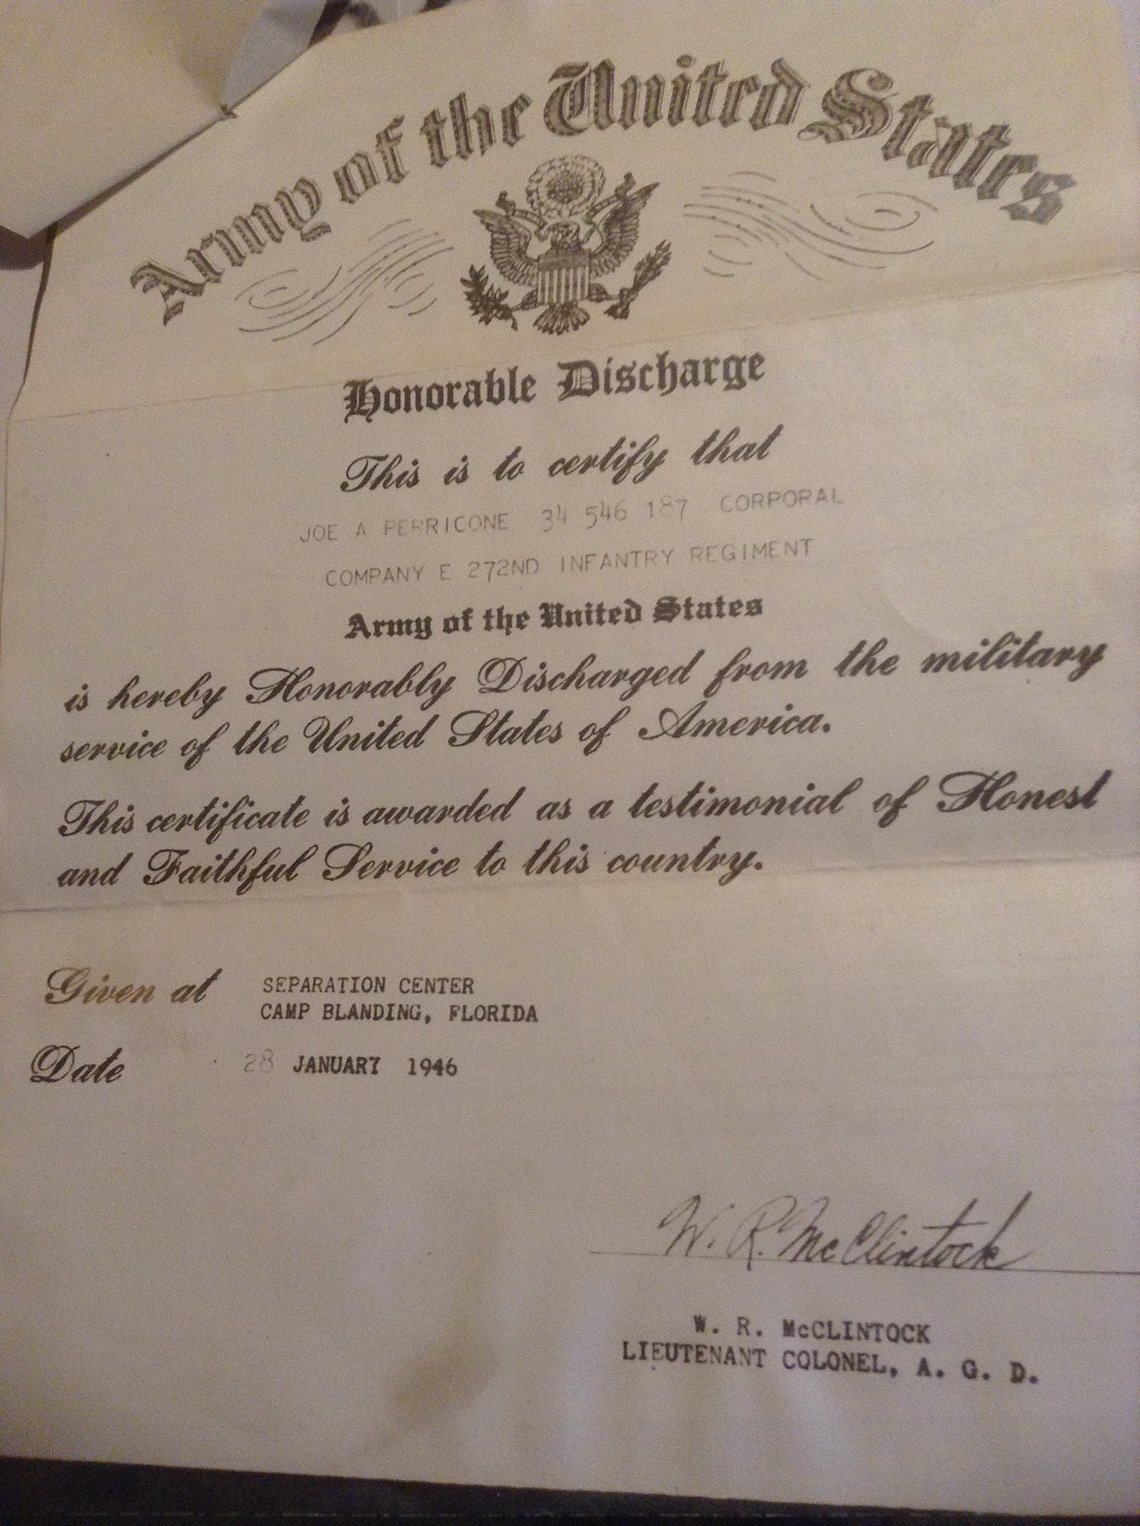 Joe Perricone and Army Honorable Discharge